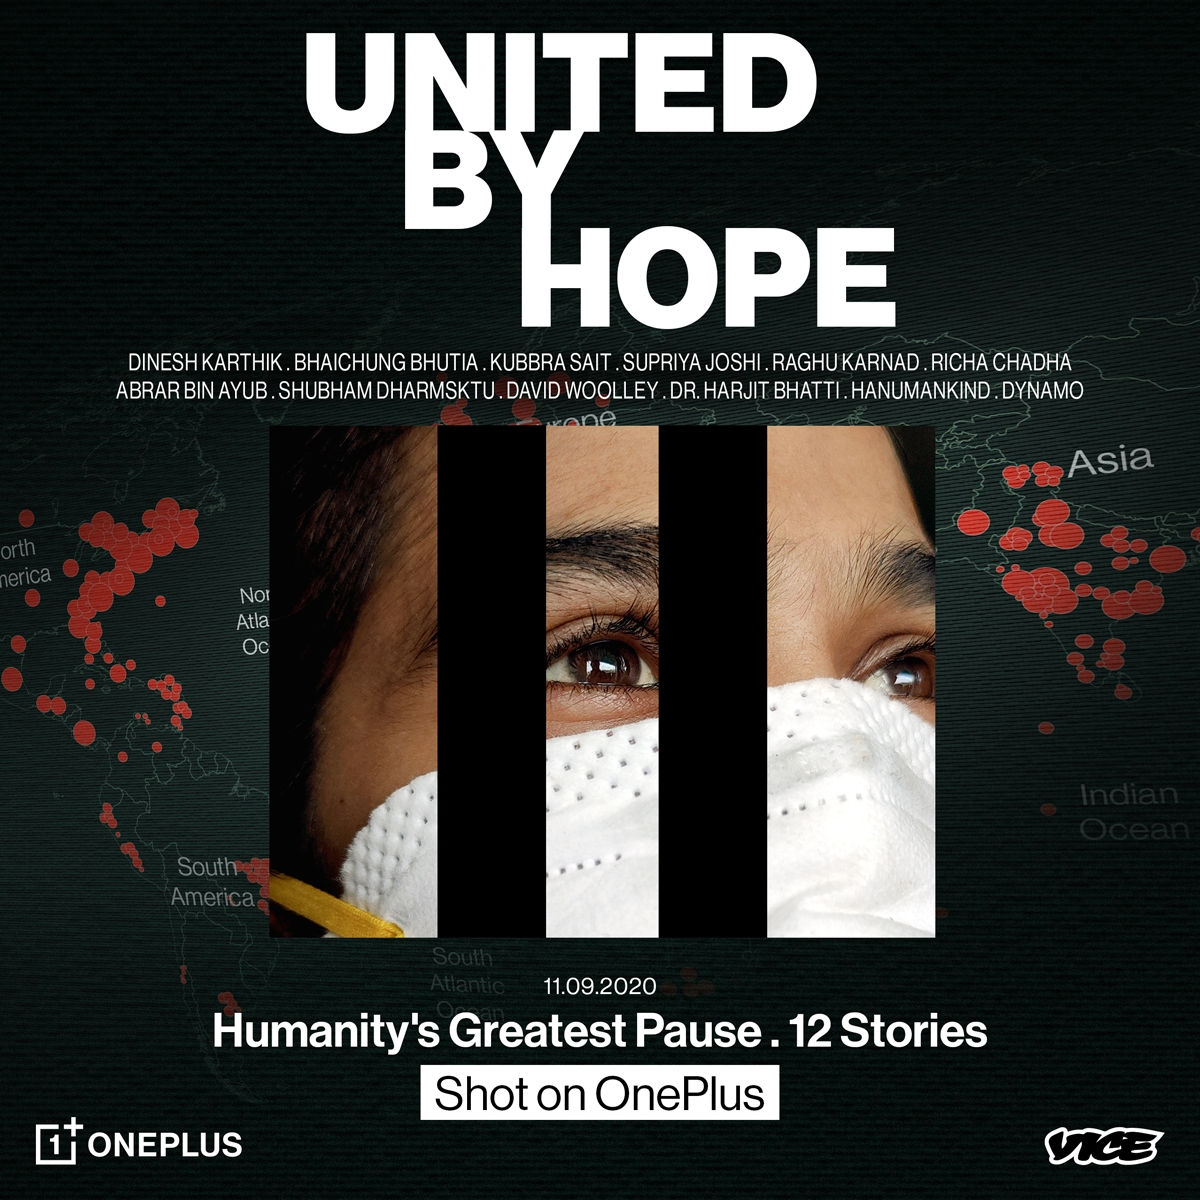 United By Hope poster